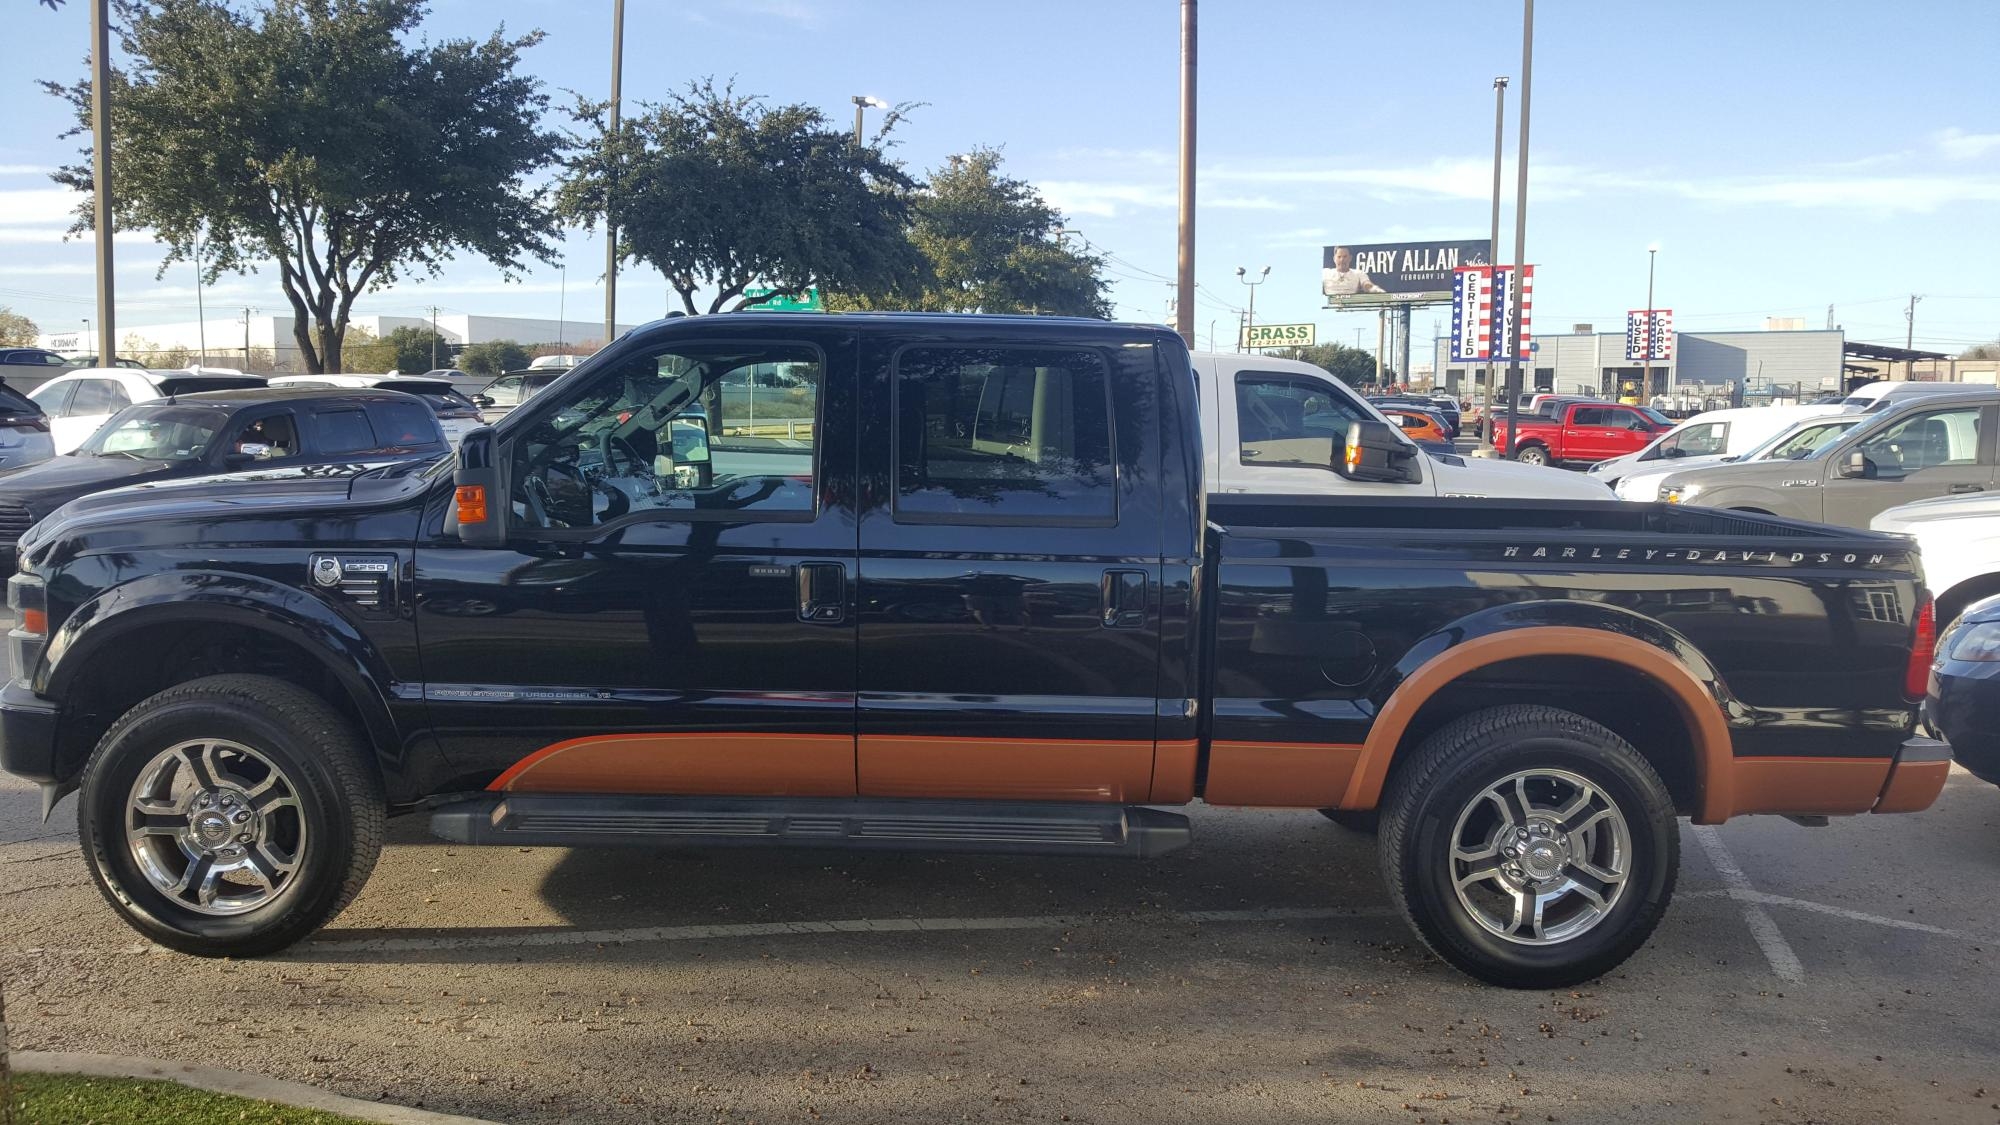 hight resolution of just picked up this bad boy 2008 f250 with 100k miles i m new to diesel engine maintenance and curious to know y alls tips for keeping it running like a